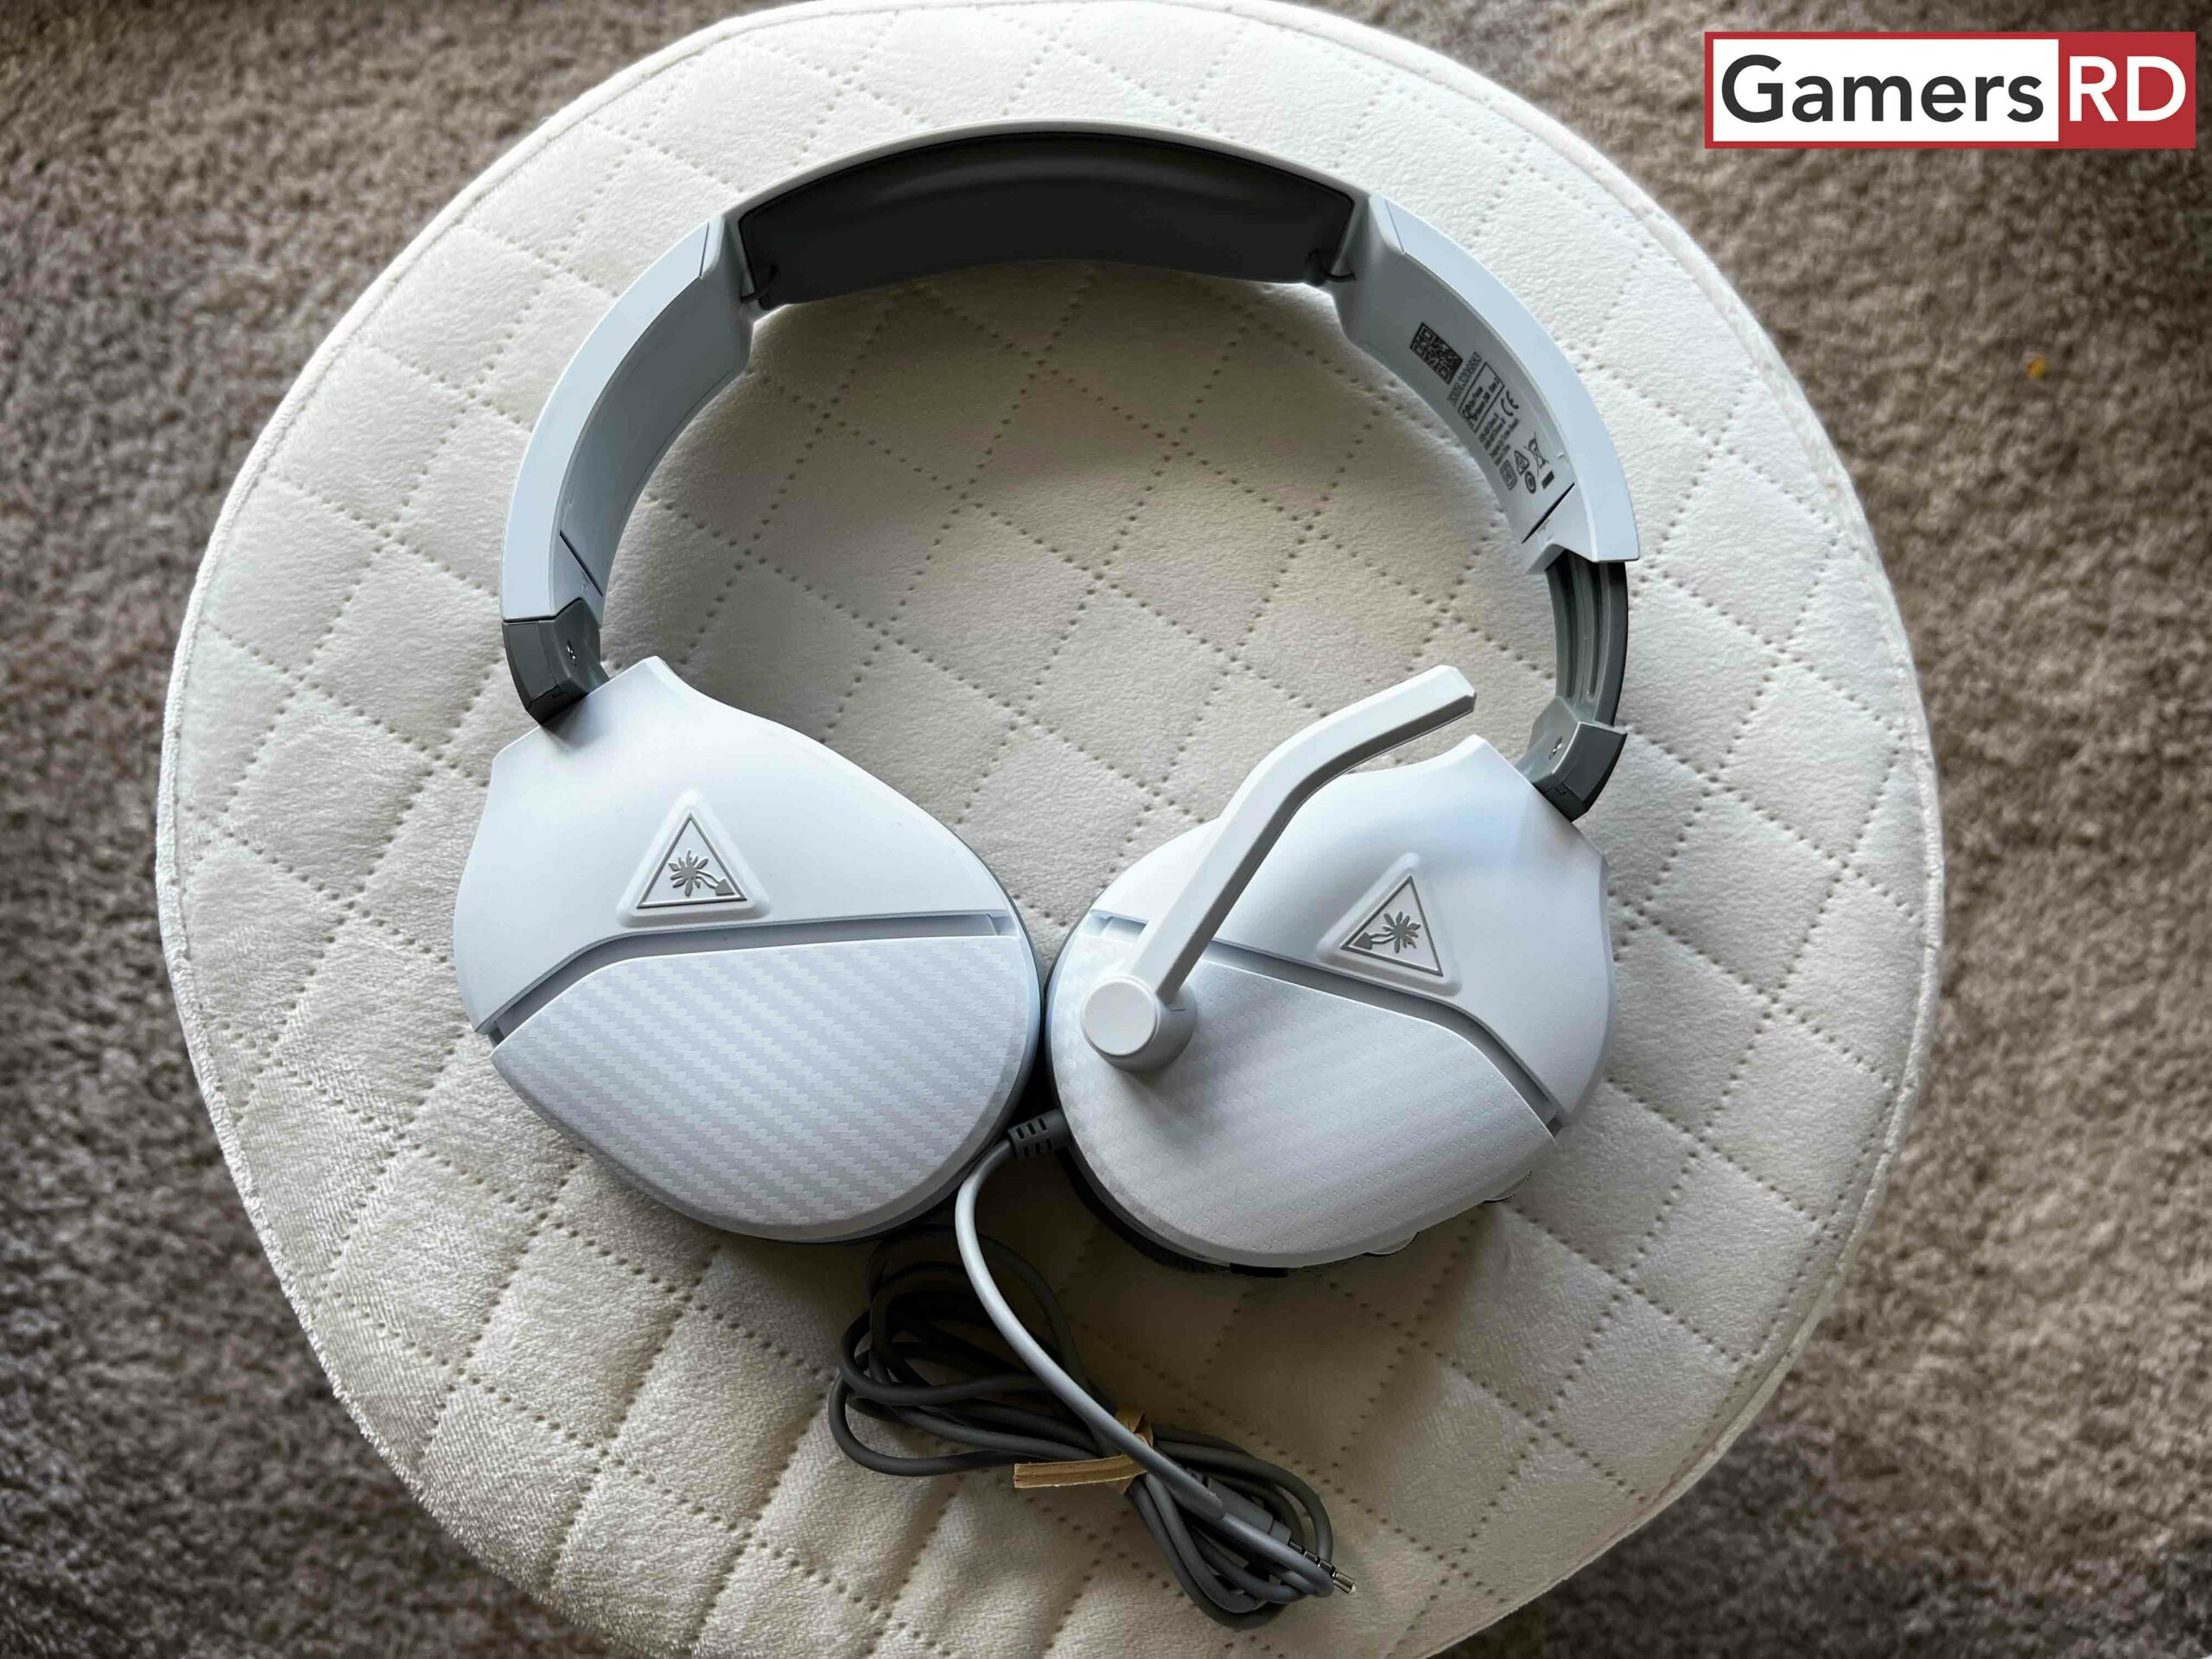 Turtle Beach Recon 200 Gen 2 Headsets Review, 2 GamersRD